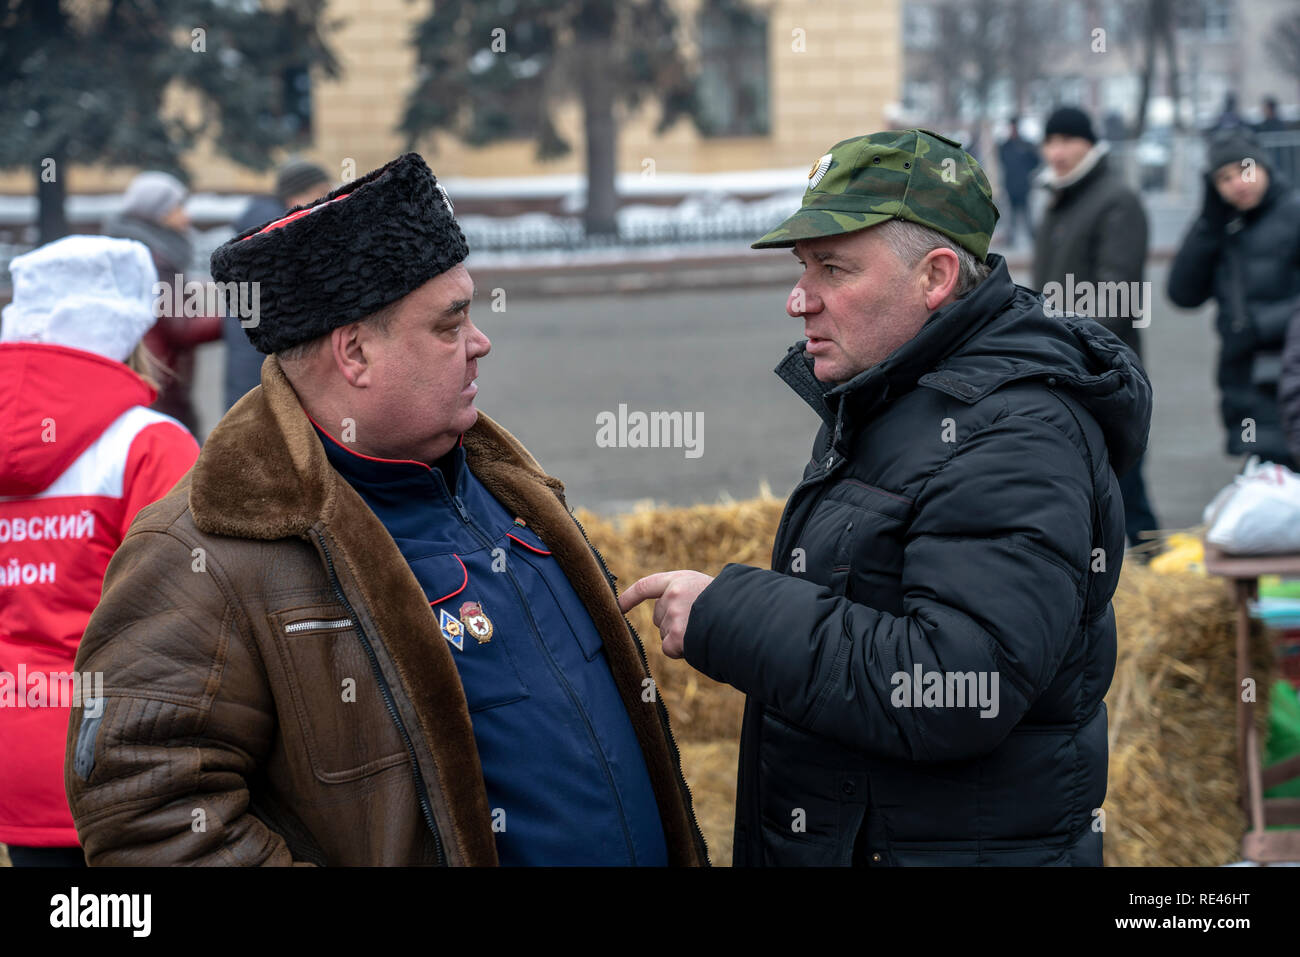 Russian Cossacks lively conversation during the festival - Stock Image